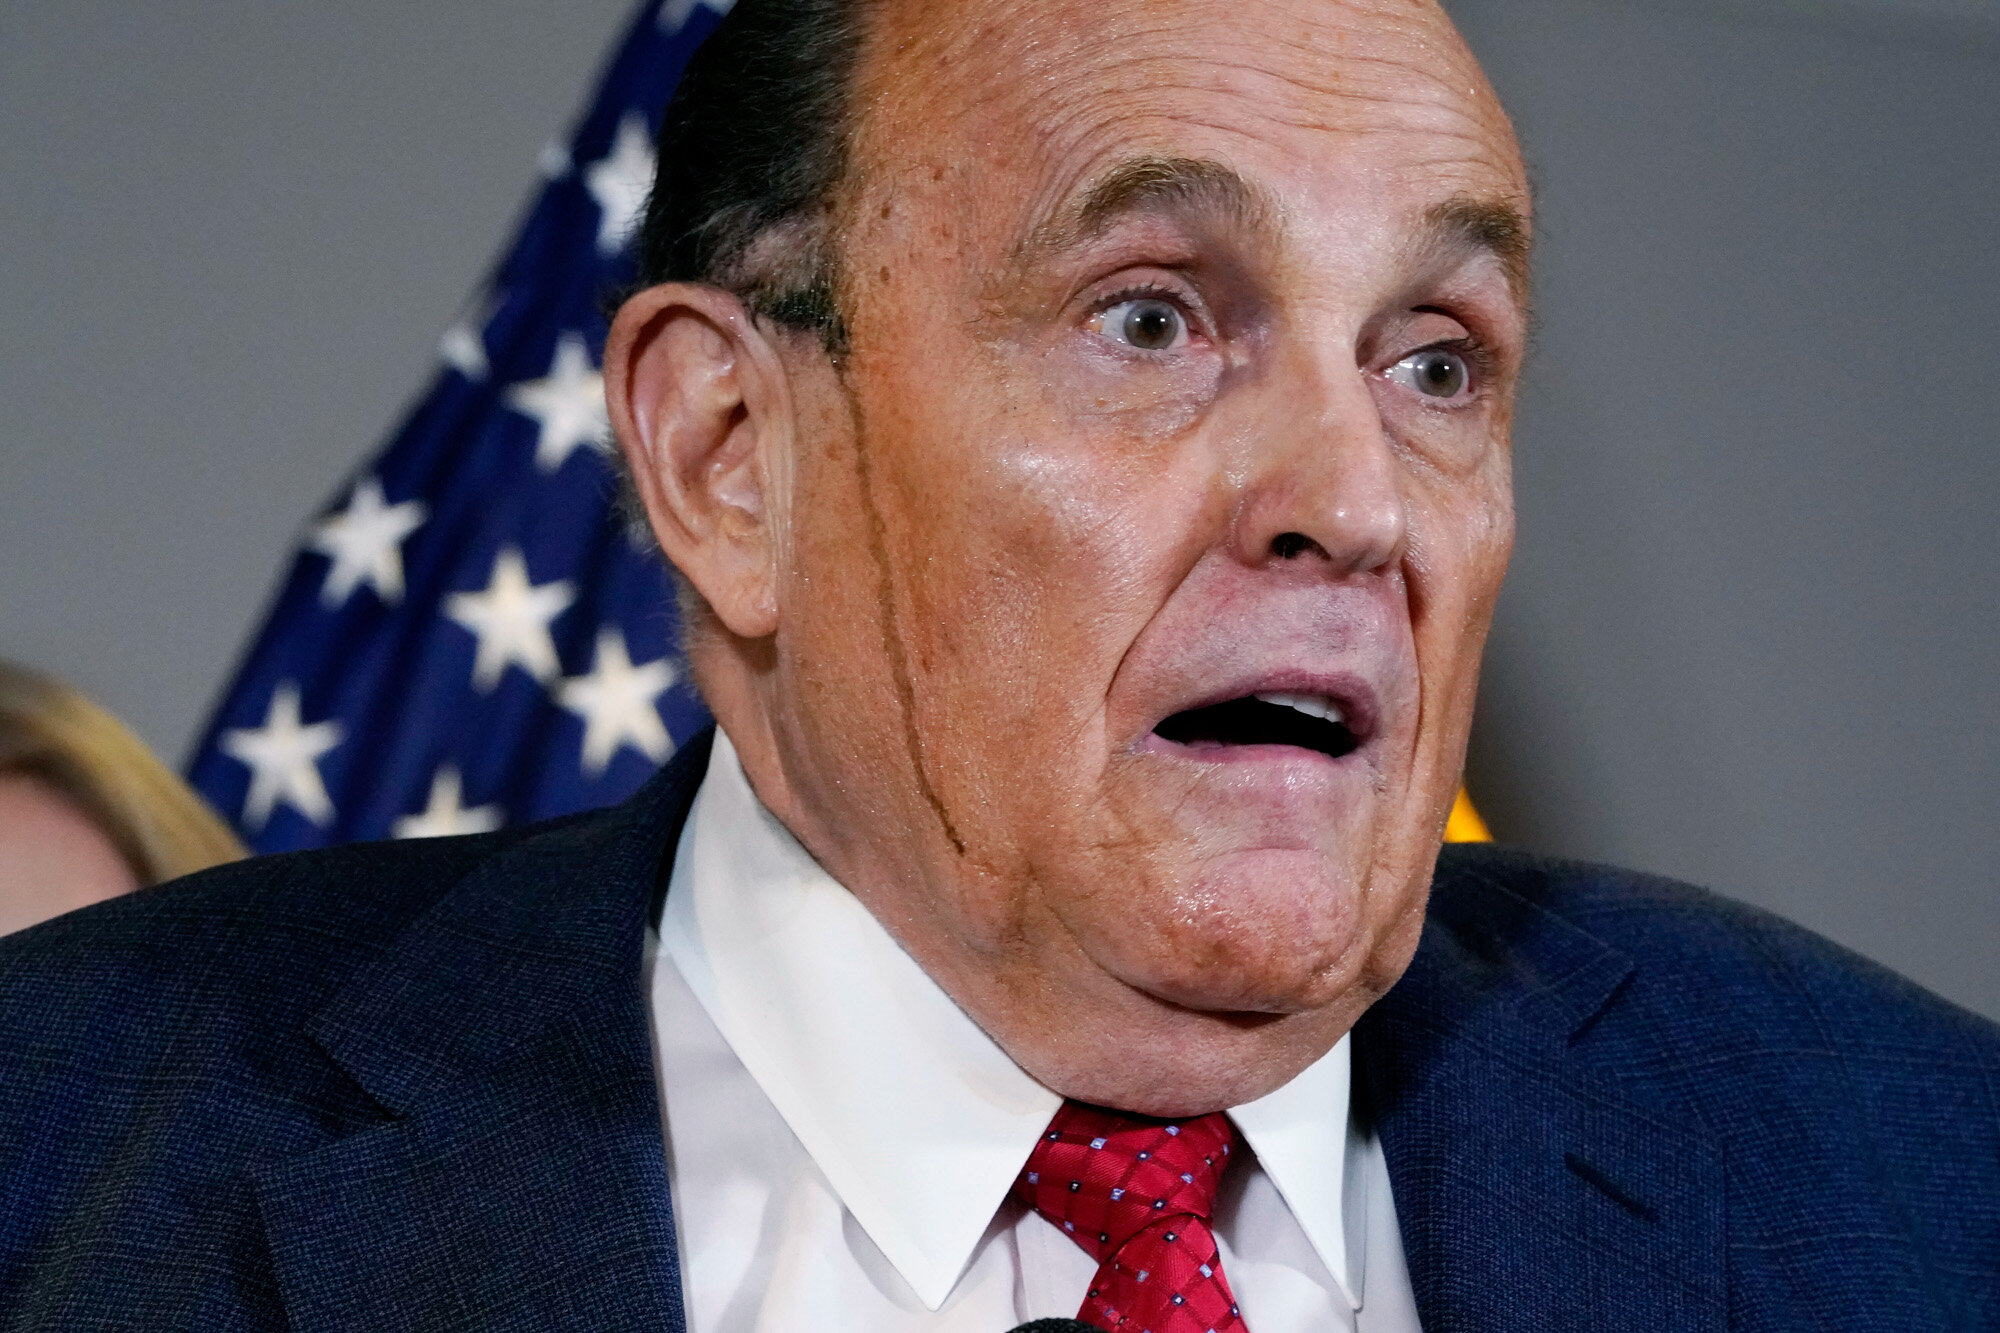 Former Mayor of New York Rudy Giuliani, a lawyer for President Donald Trump, speaks during a news conference at the Republican National Committee headquarters in Washington on Nov. 19, 2020. (AP Photo/Jacquelyn Martin)